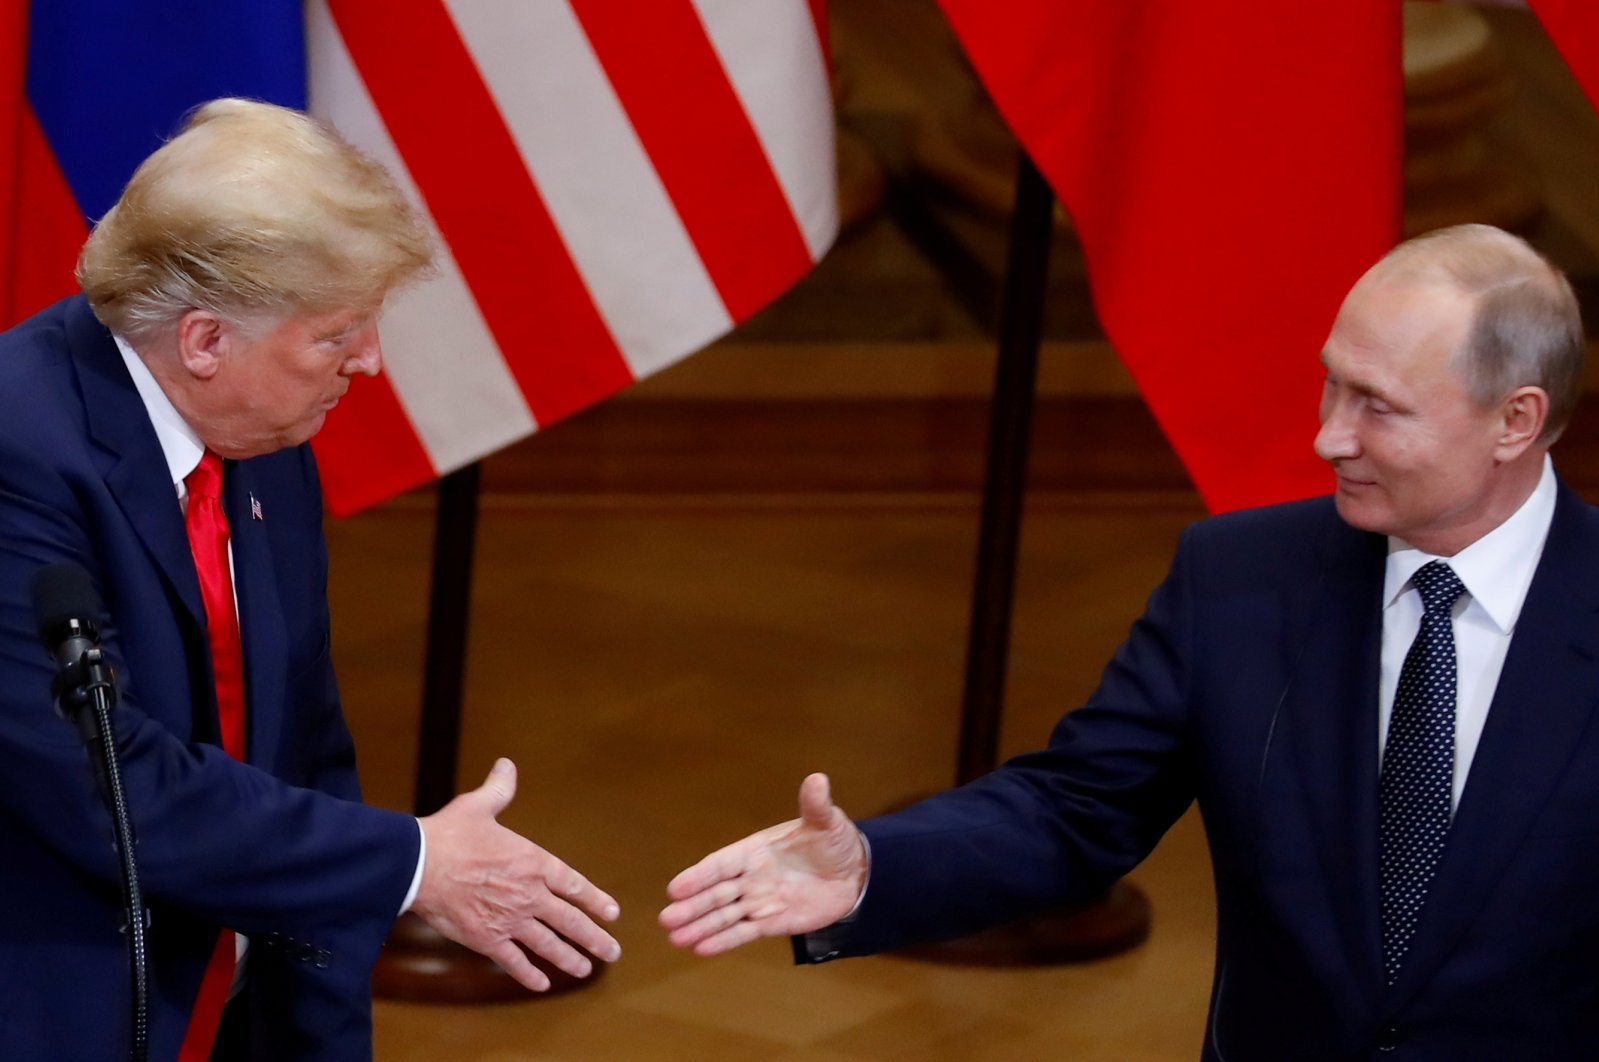 Former U.S. President Donald Trump and Russian President Vladimir Putin shake hands as they hold a joint news conference after their meeting in Helsinki, Finland, July 16, 2018. (Reuters Photo)